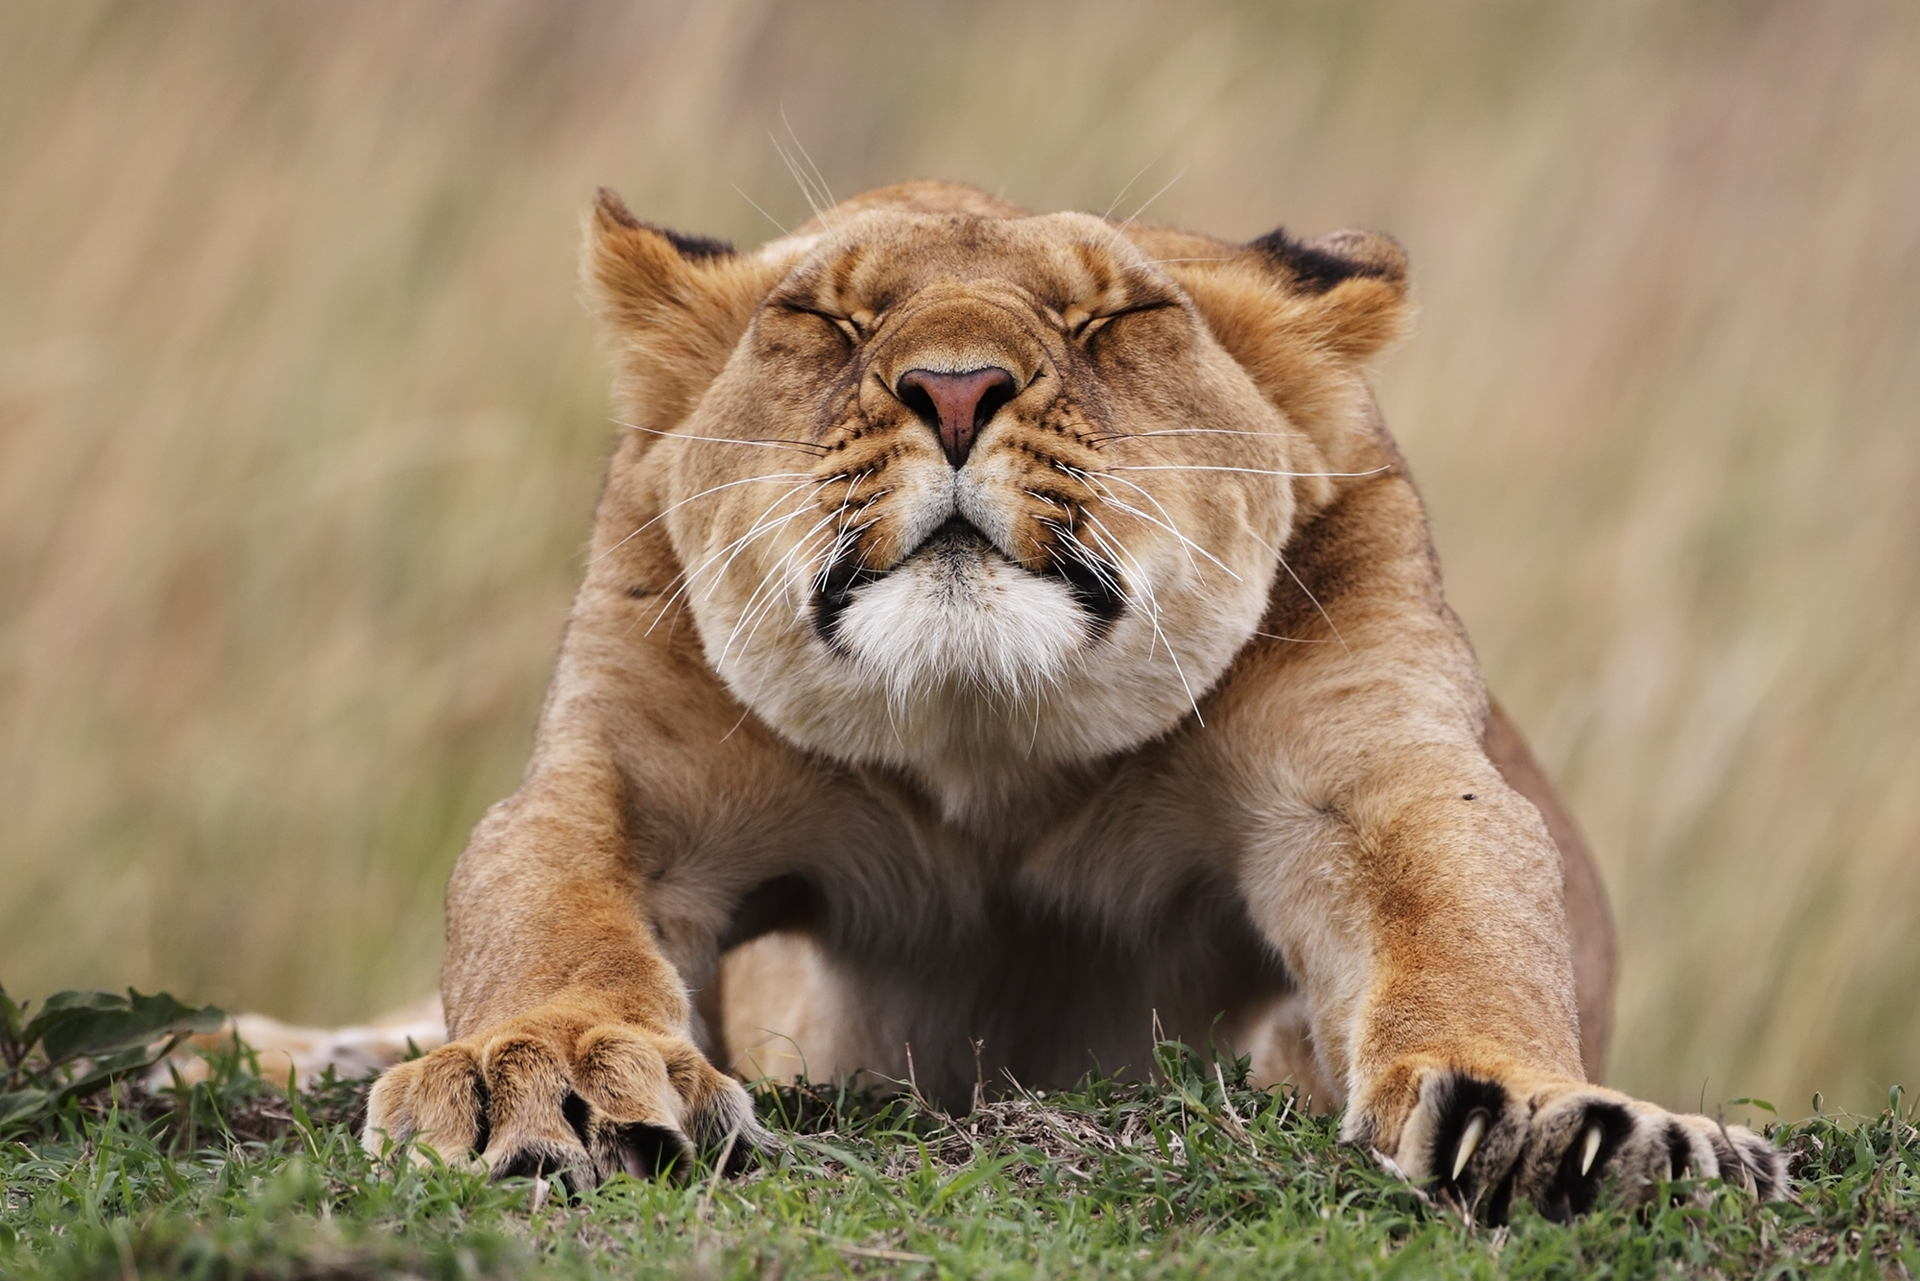 Popular Lioness images for mobile phone